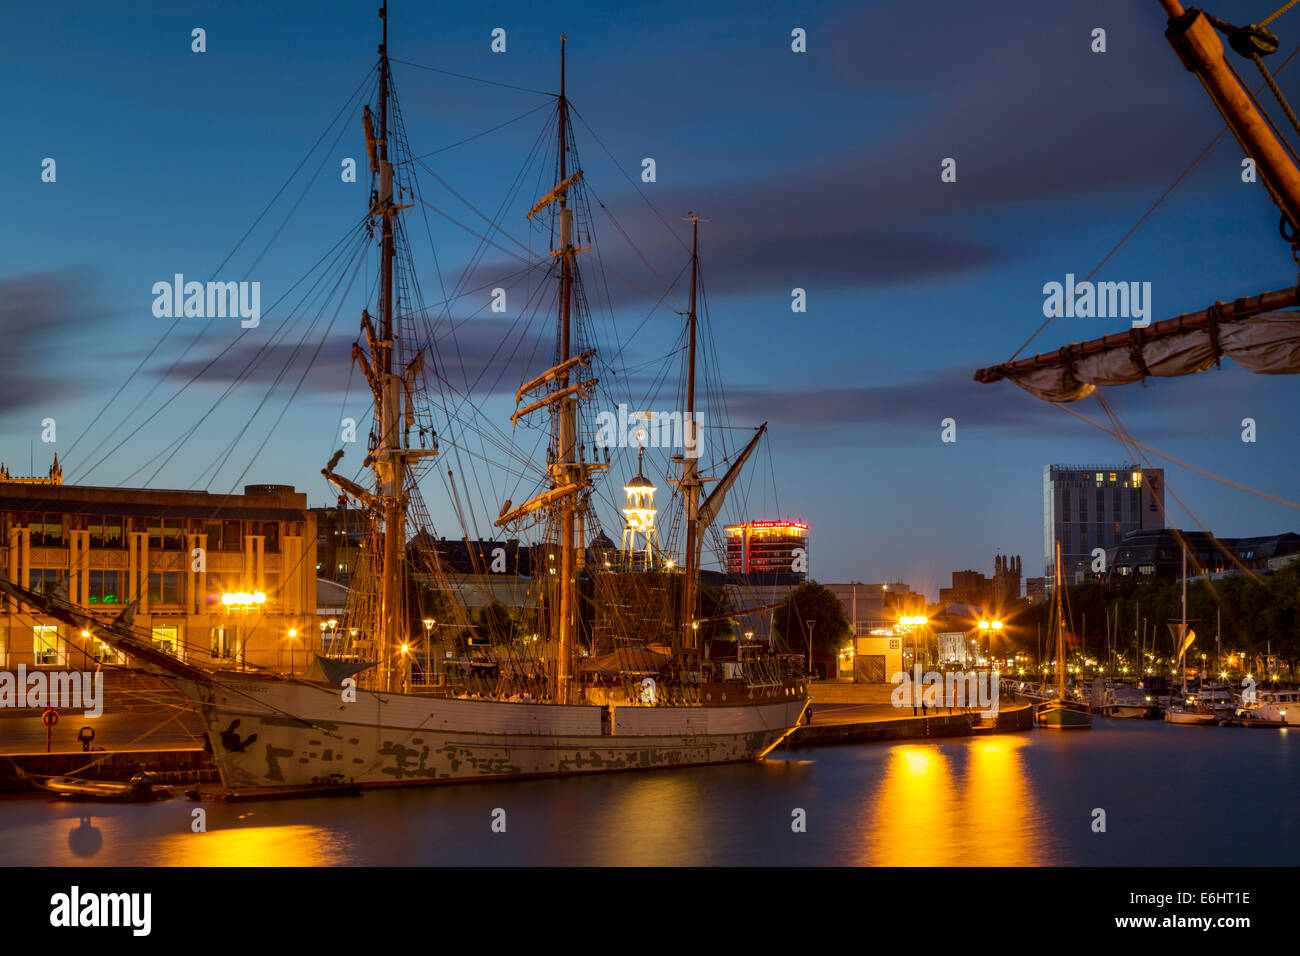 Three masted SS Kaskelot docked in the historic town of Bristol, England Stock Photo